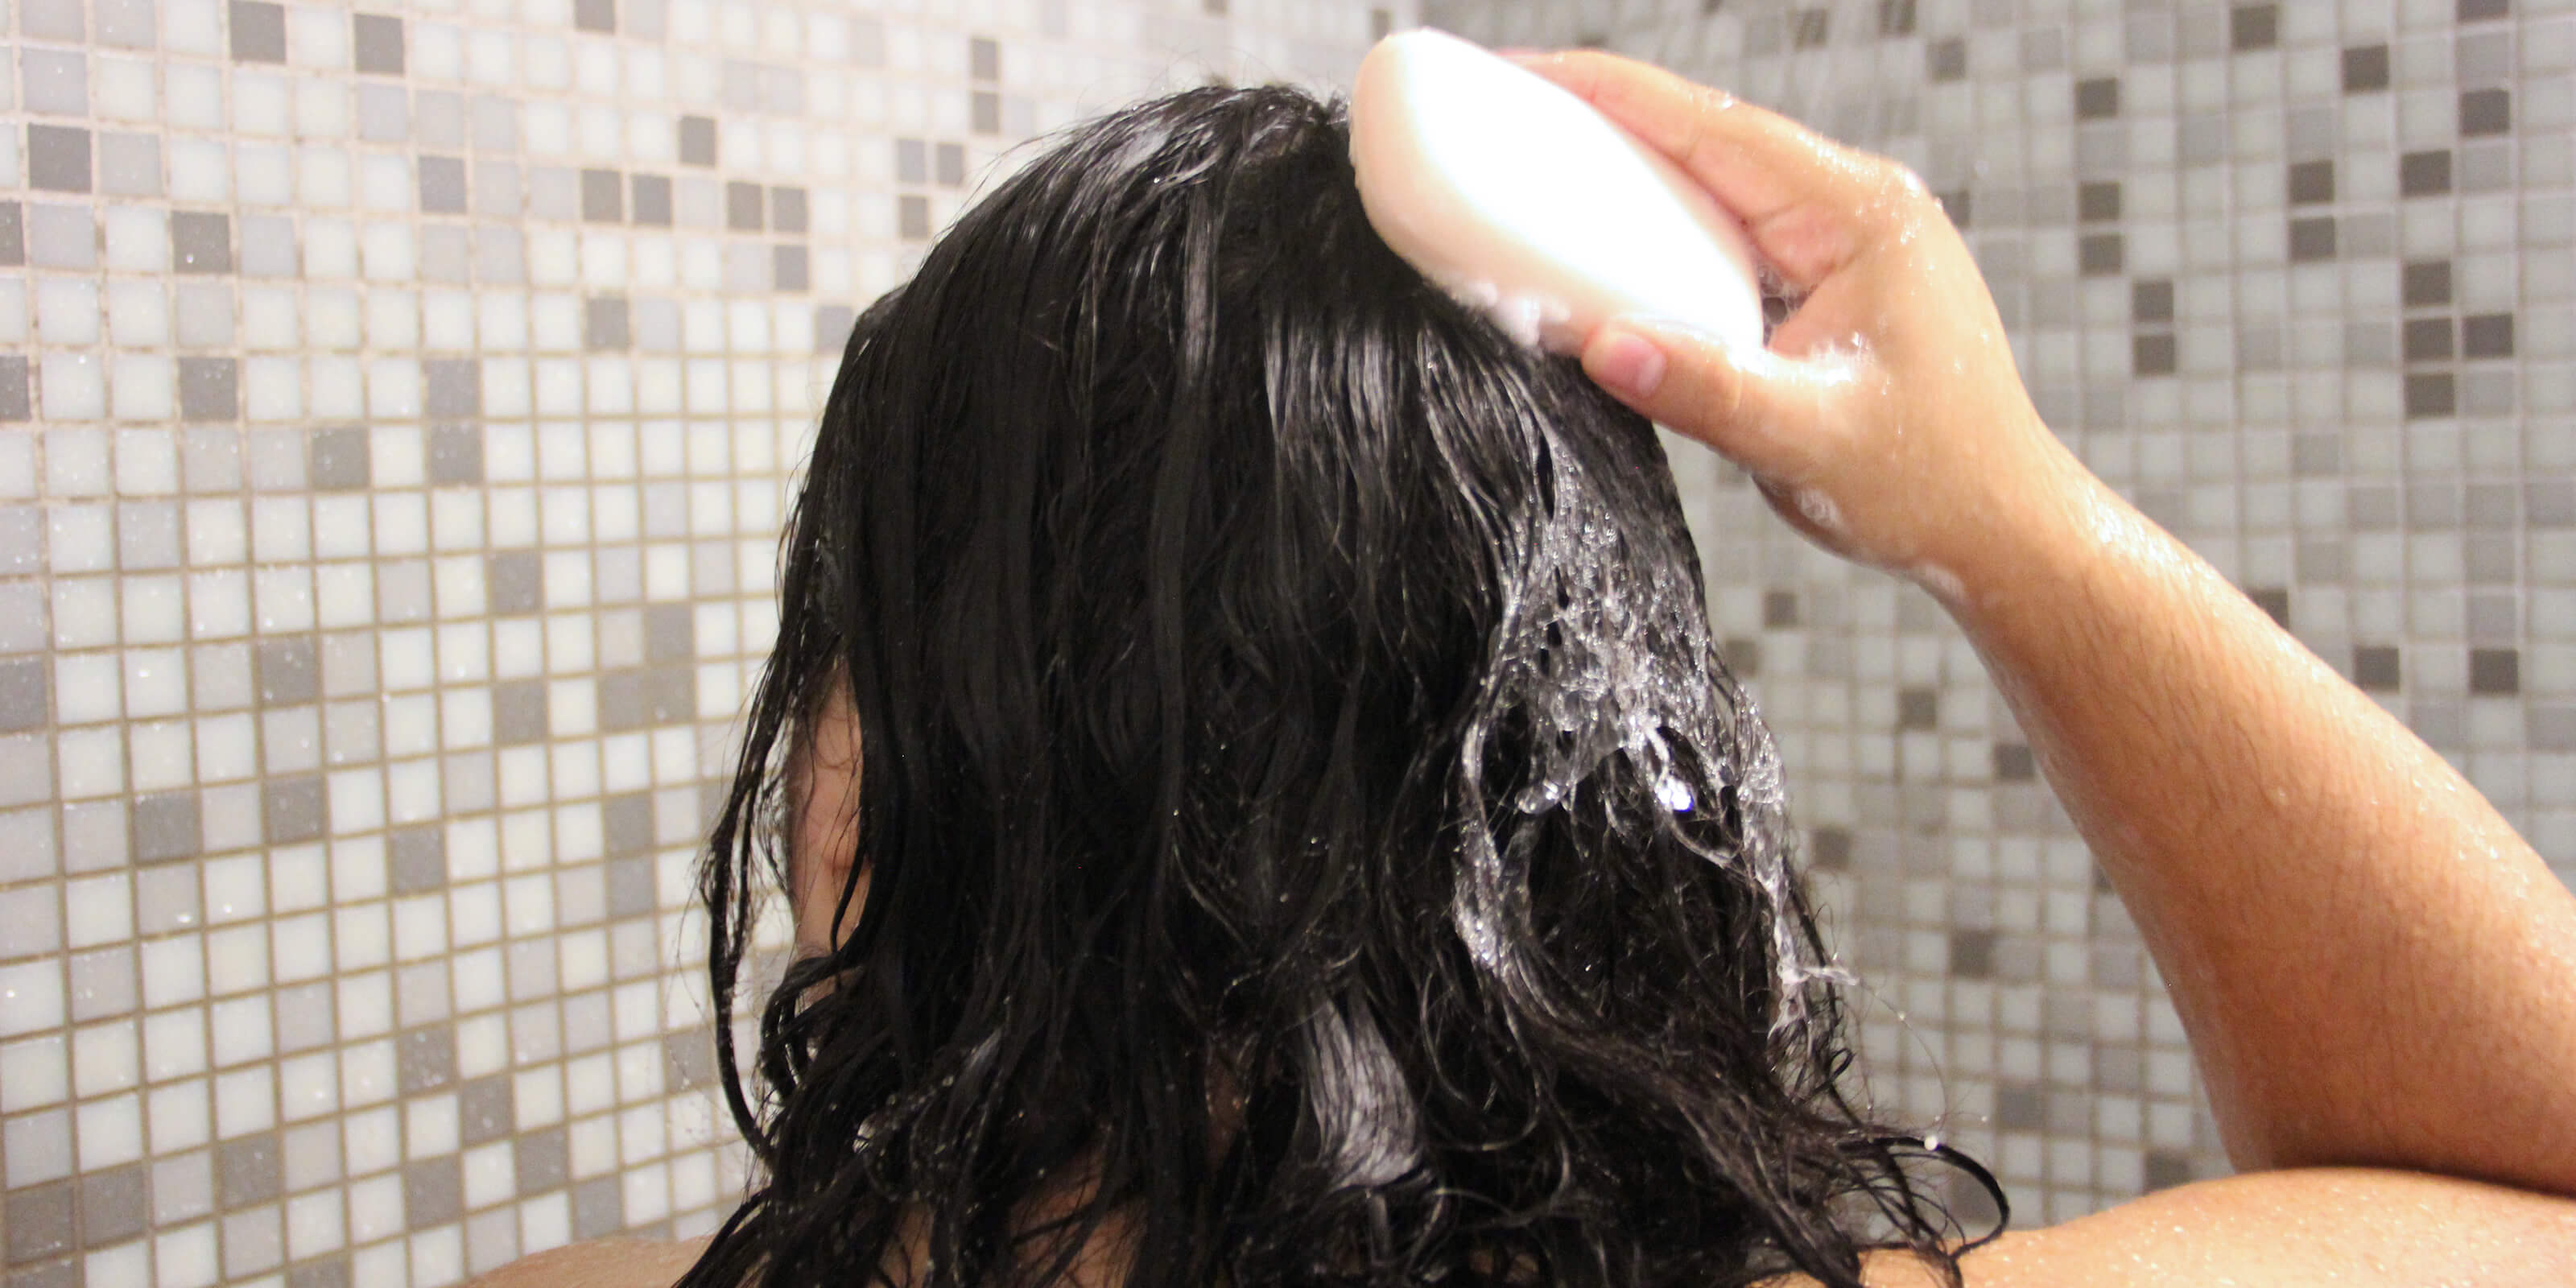 woman rubbing shampoo bar on hair